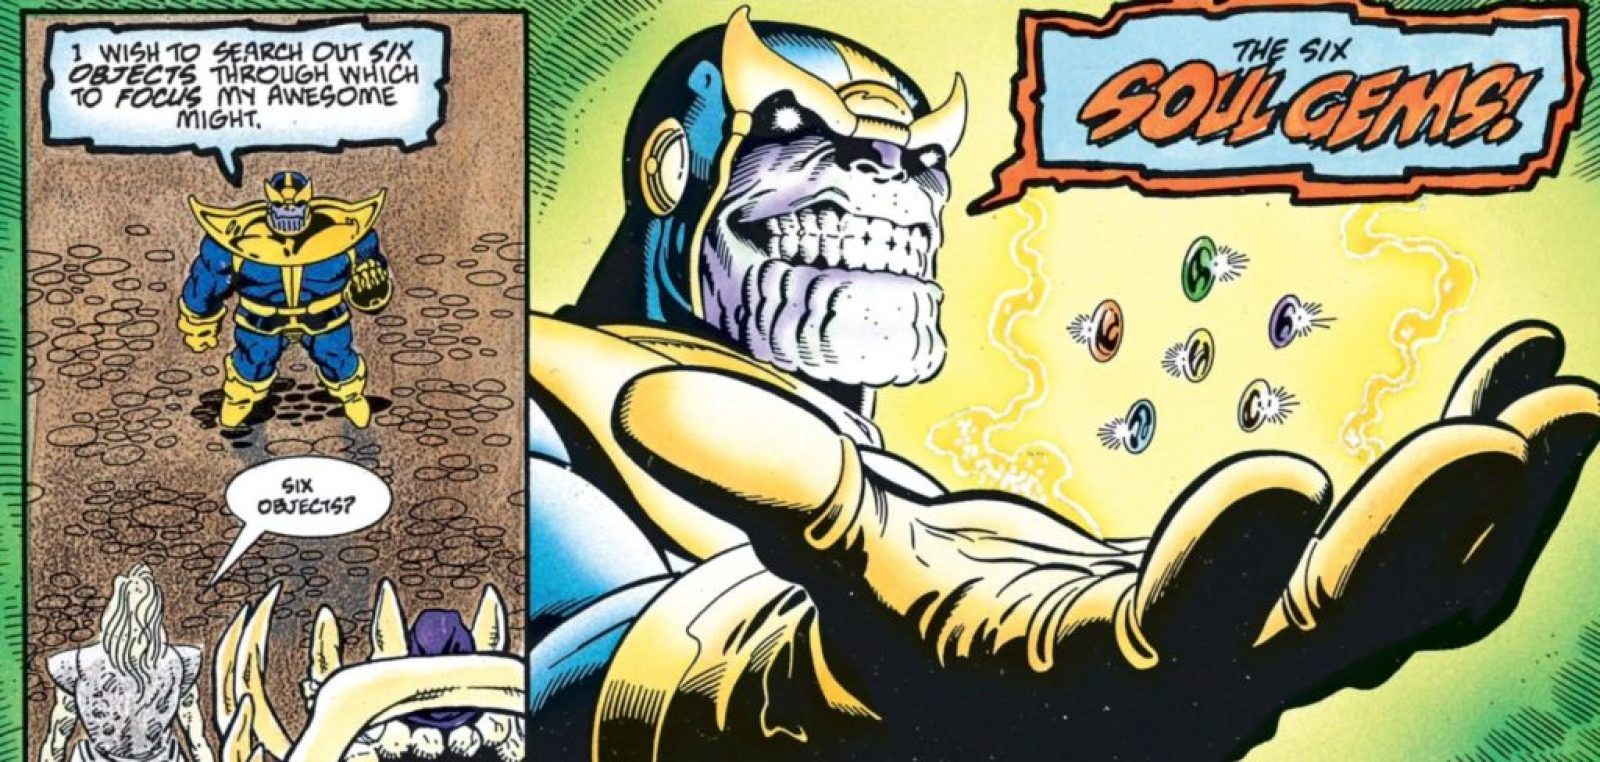 Thanos seeks the soul gems in Thanos Quest